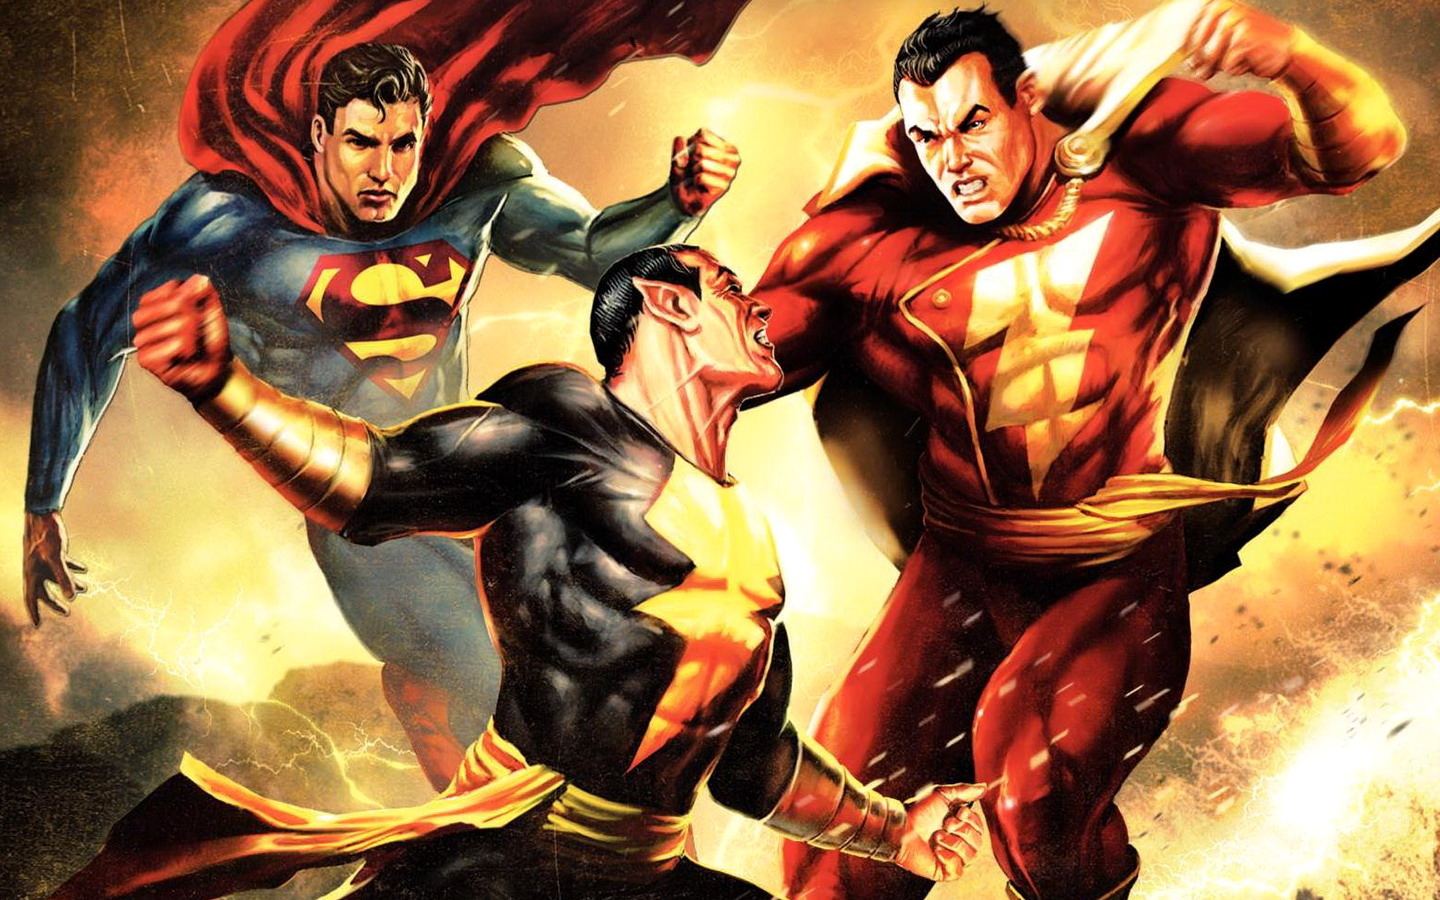 TÉLÉCHARGER SUPERMAN SHAZAM THE RETURN OF BLACK ADAM VF